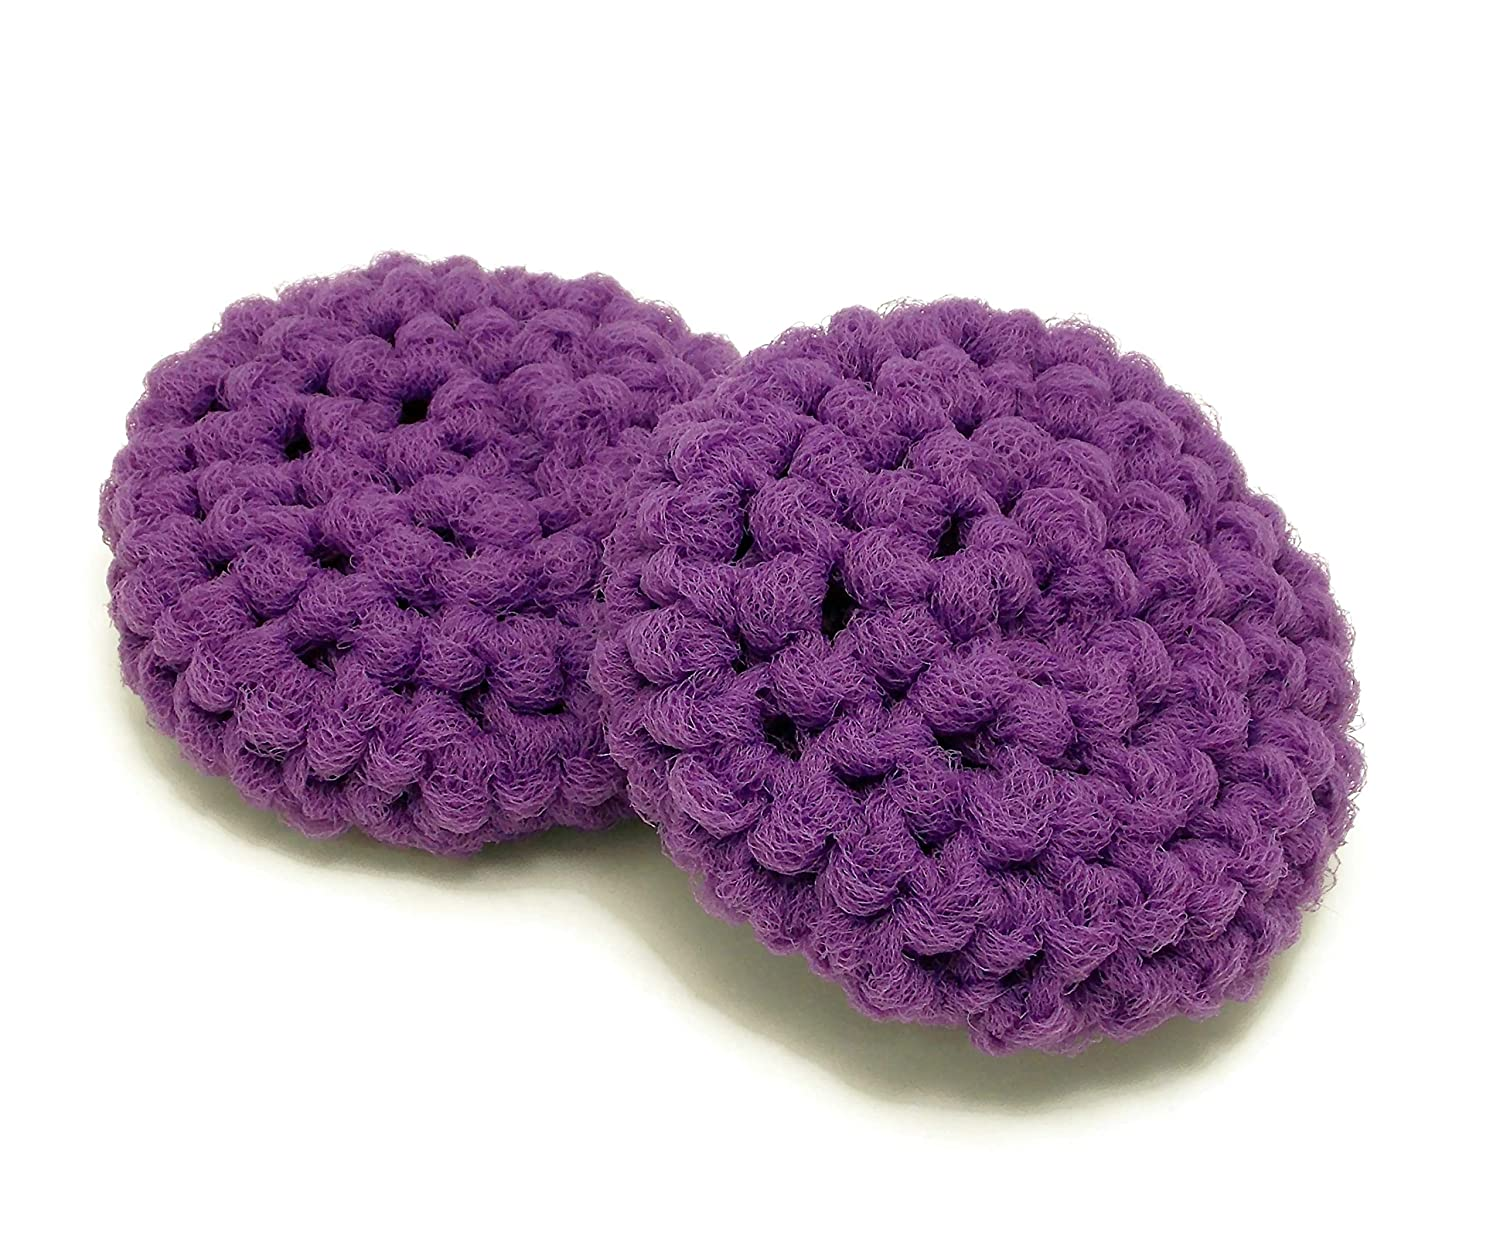 Handmade Purple Reusable Dish 2 Set of Scrubbers Our Max 45% OFF shop most popular